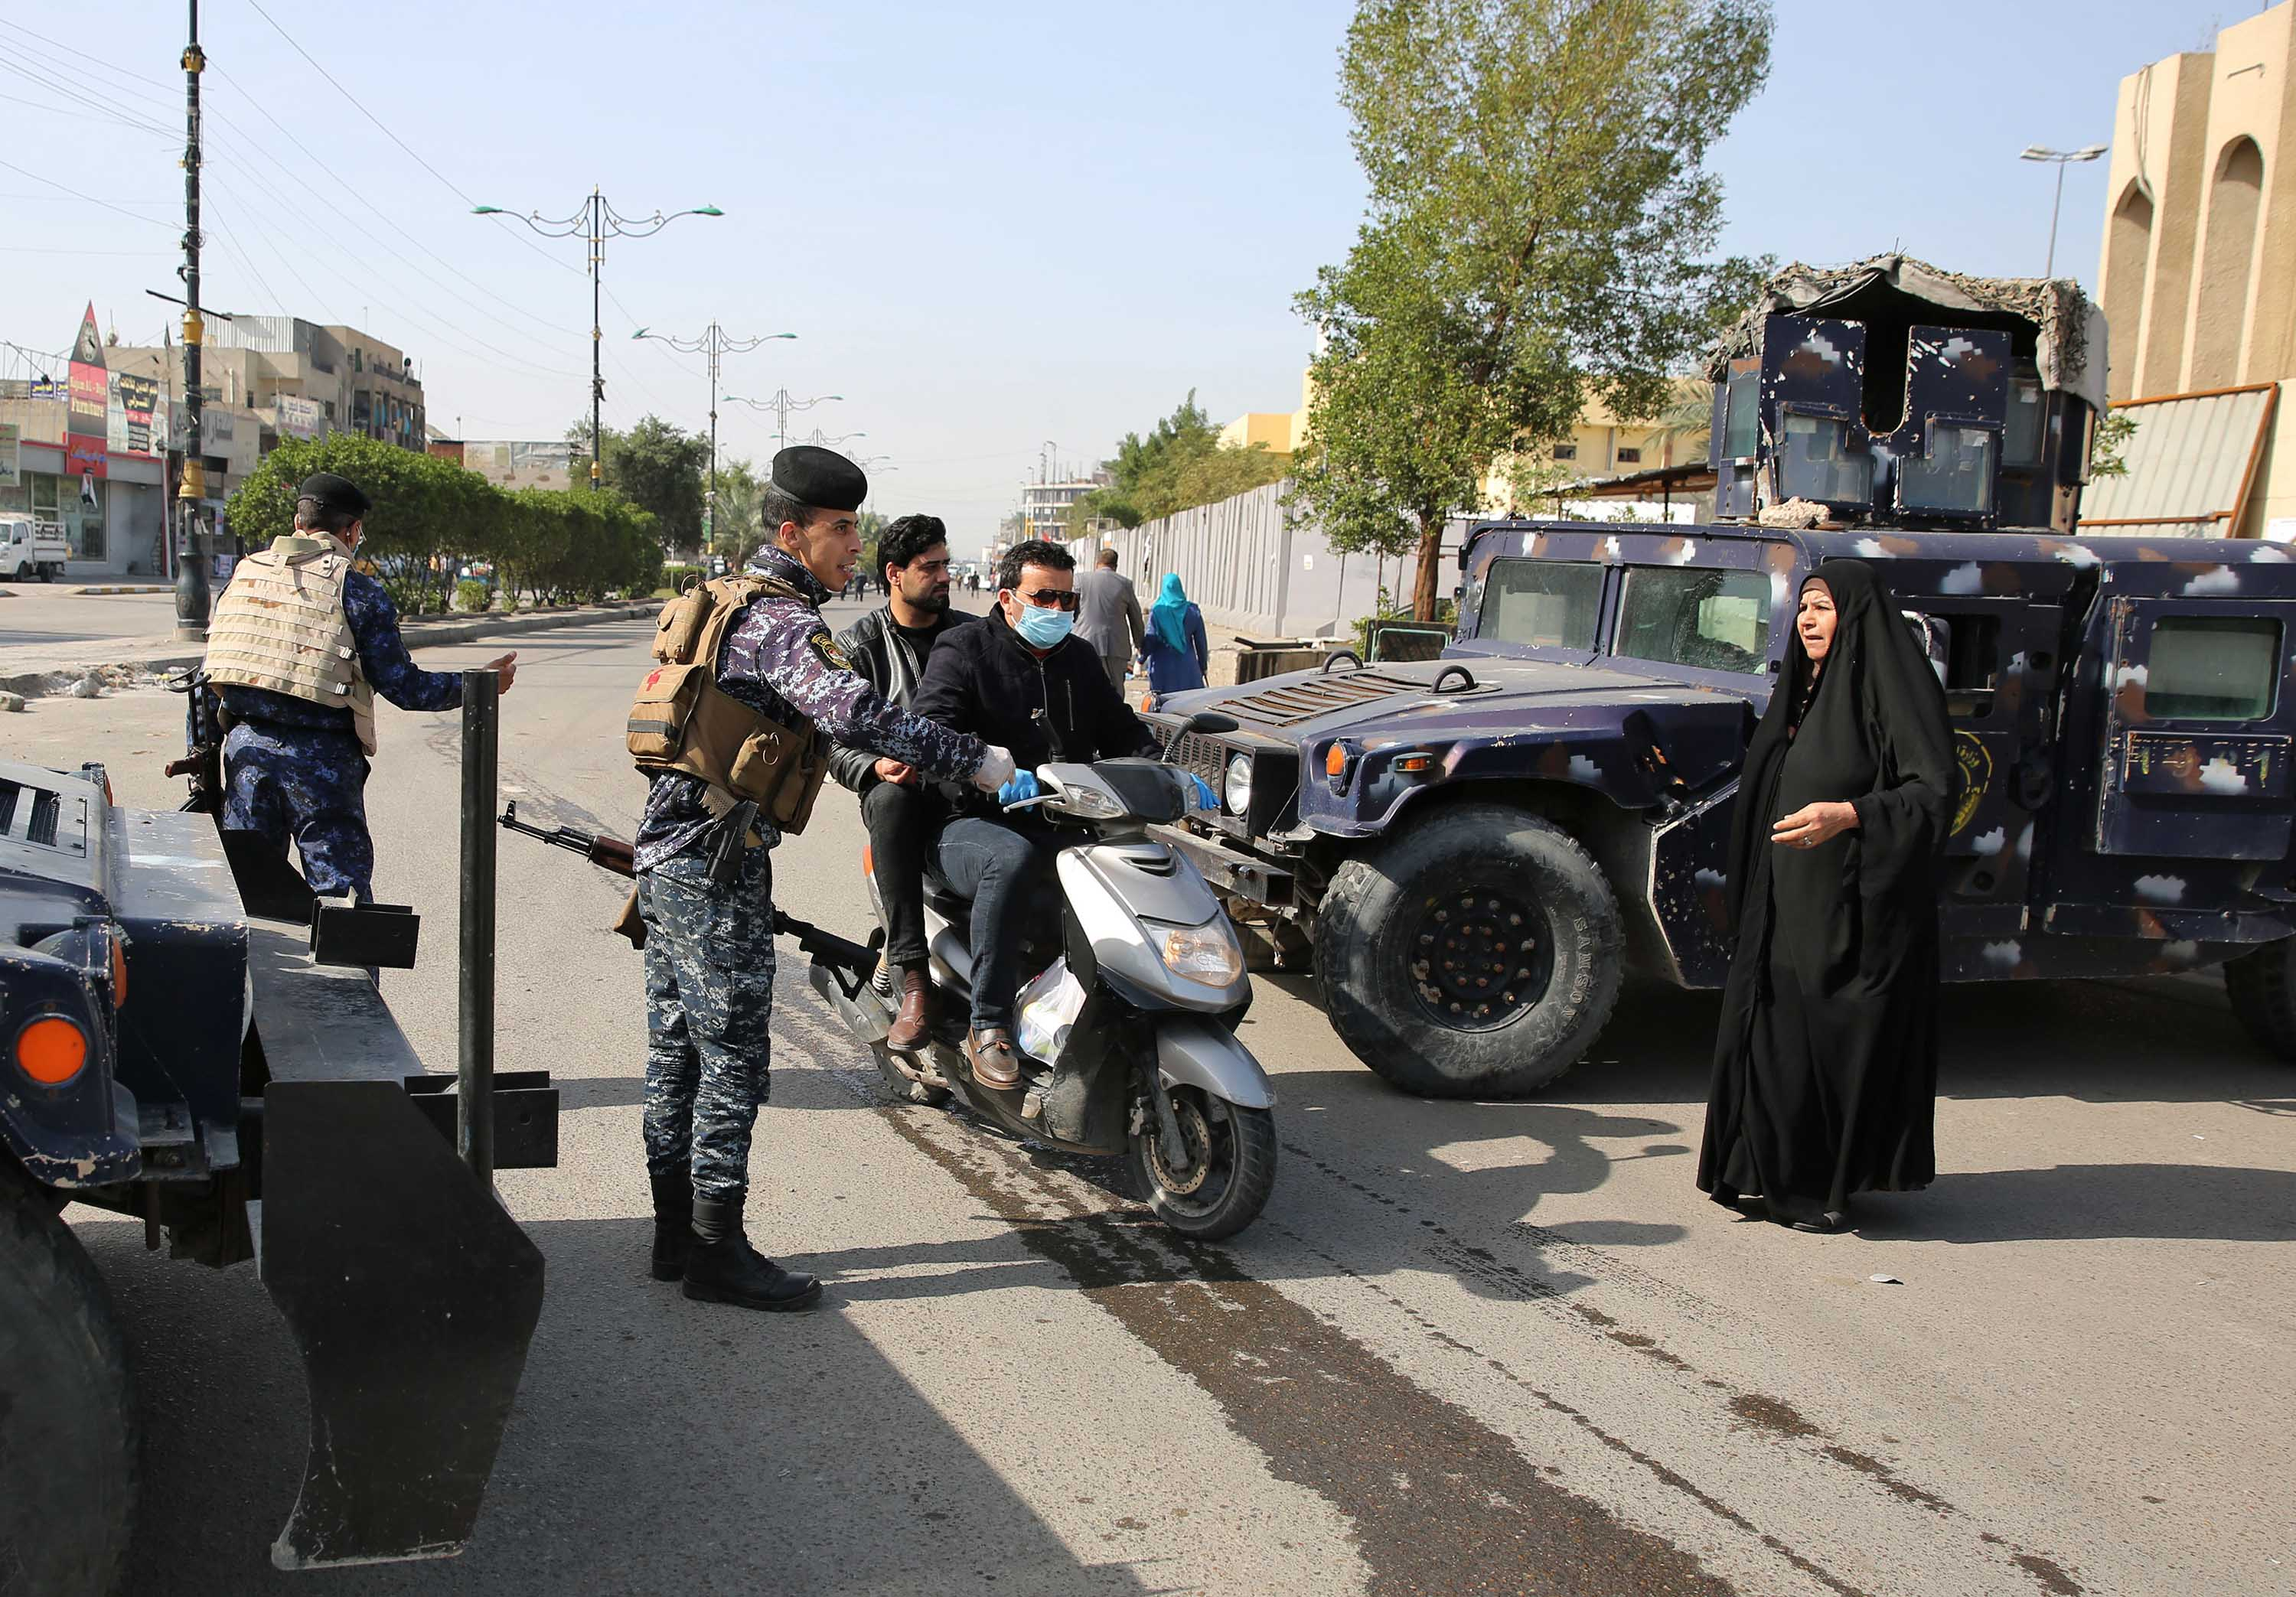 Iraqi police work at a checkpoint in Baghdad, Iraq, on March 24.